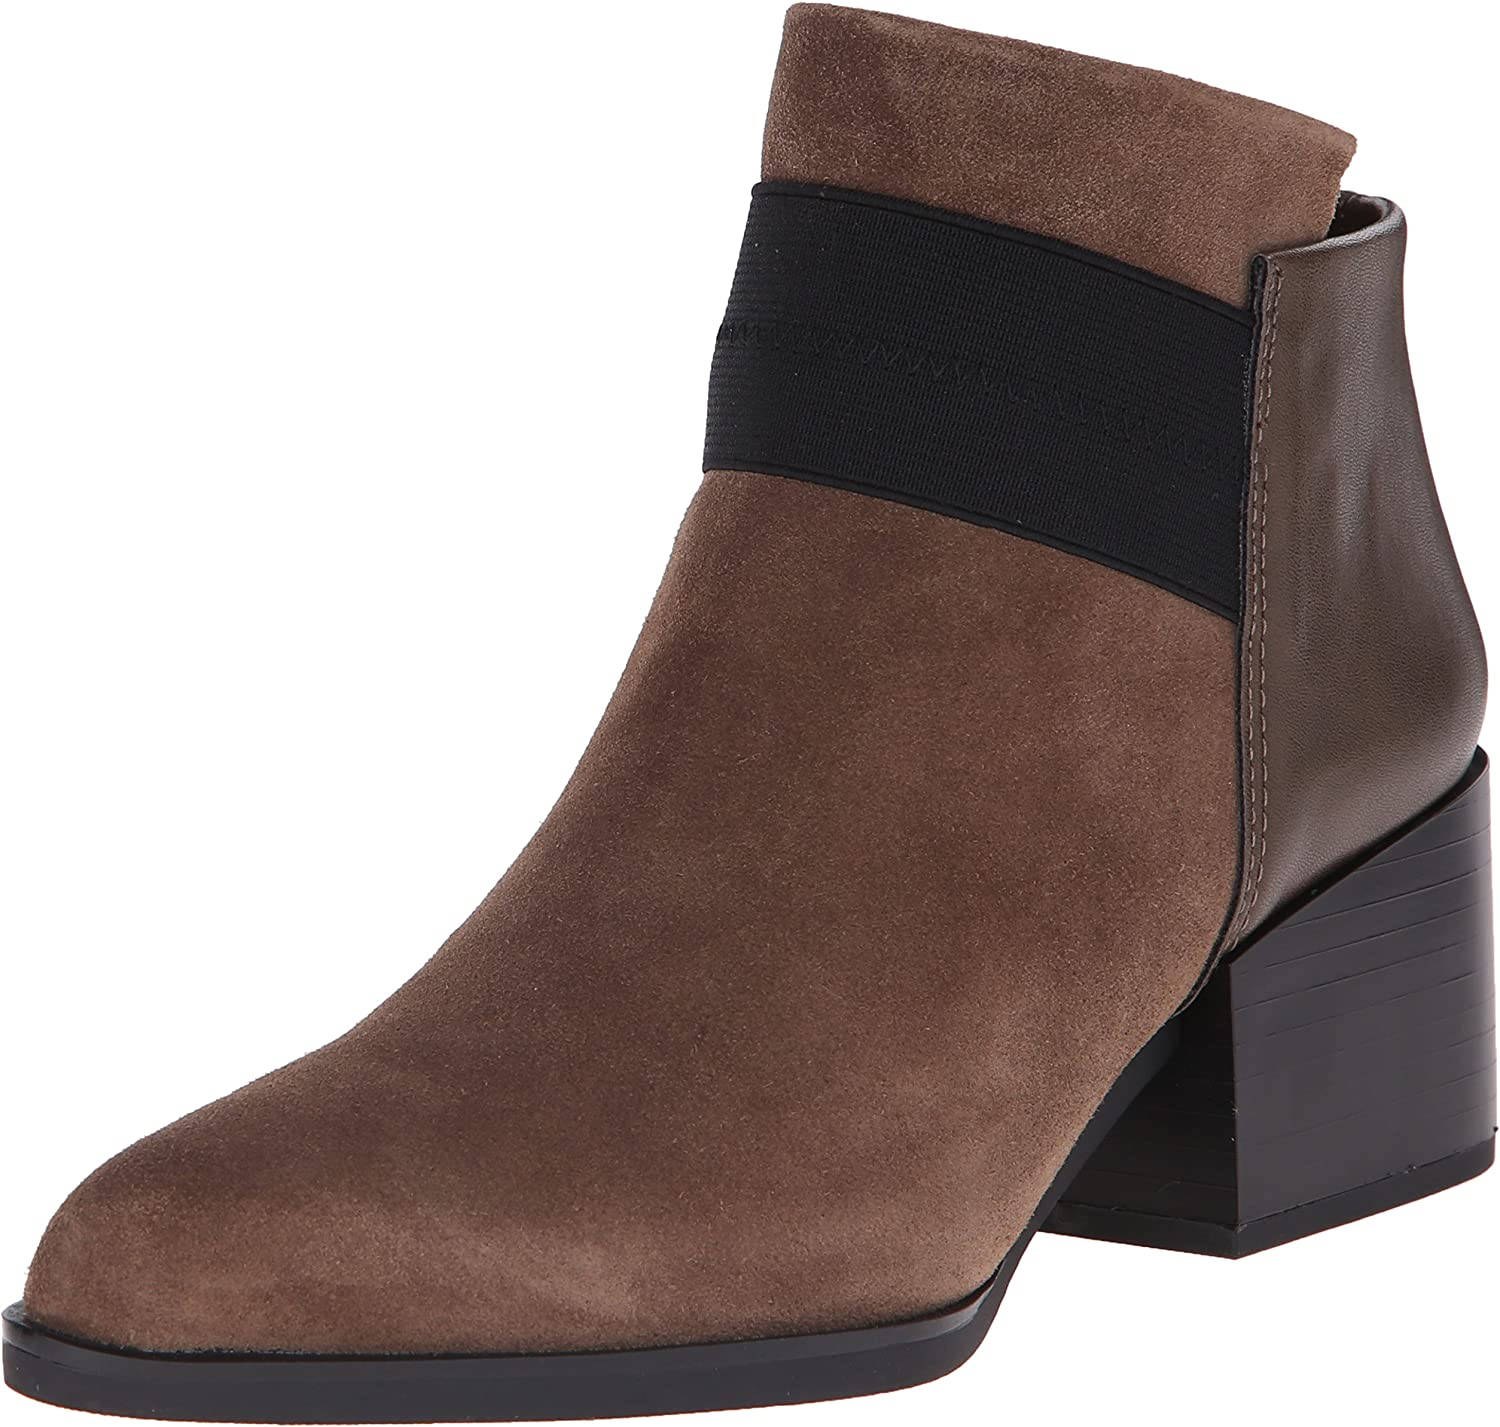 Circus by Sam Edelman Womens Rafa Bootie, Walnut Black, 8 M US